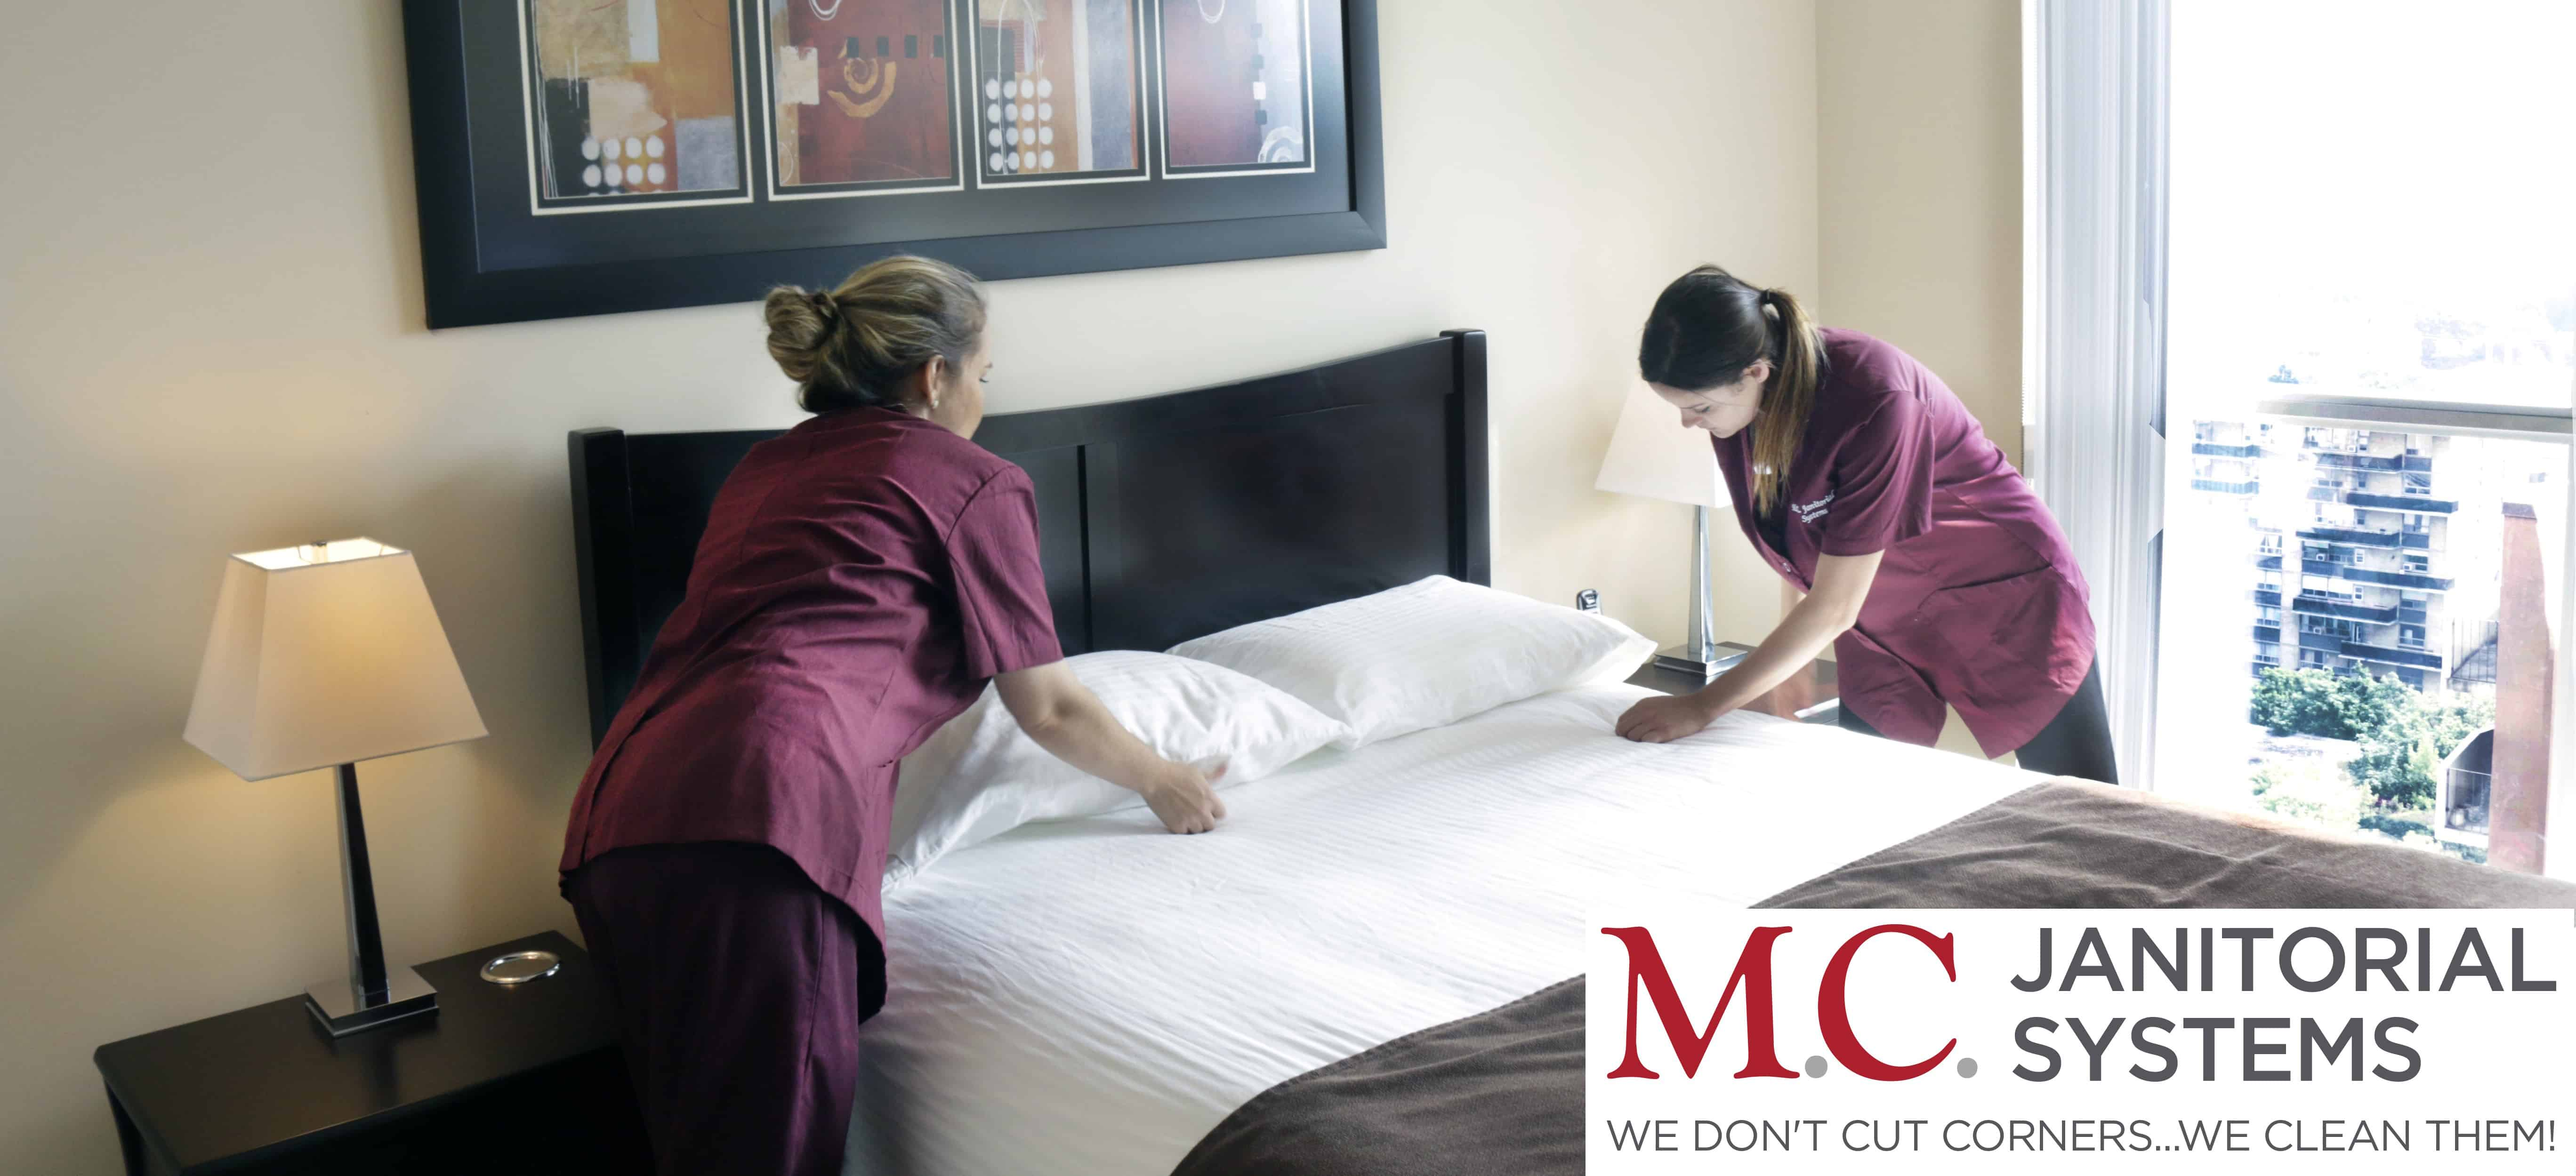 mc-janitorial-systems-cleaners-in-action